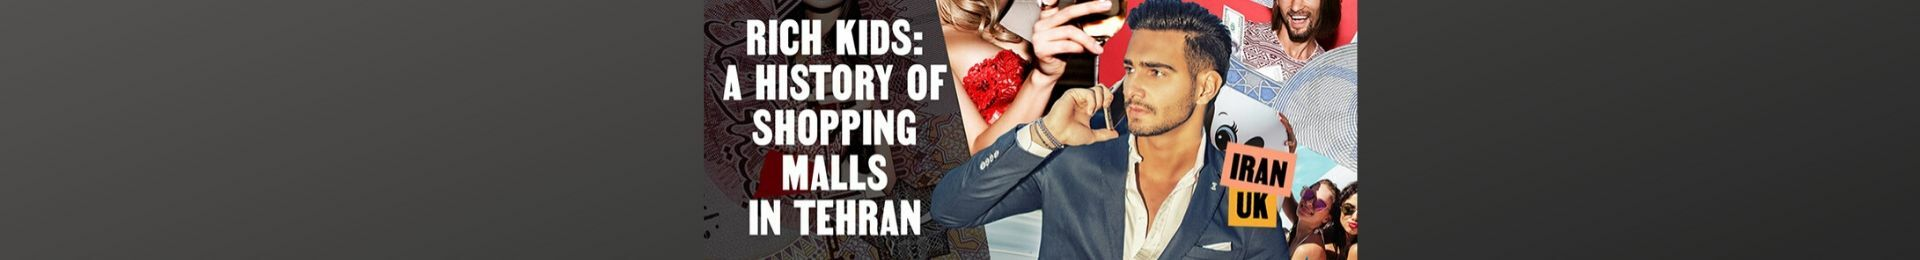 Rich Kids: A History of Shopping Malls in Tehran banner image